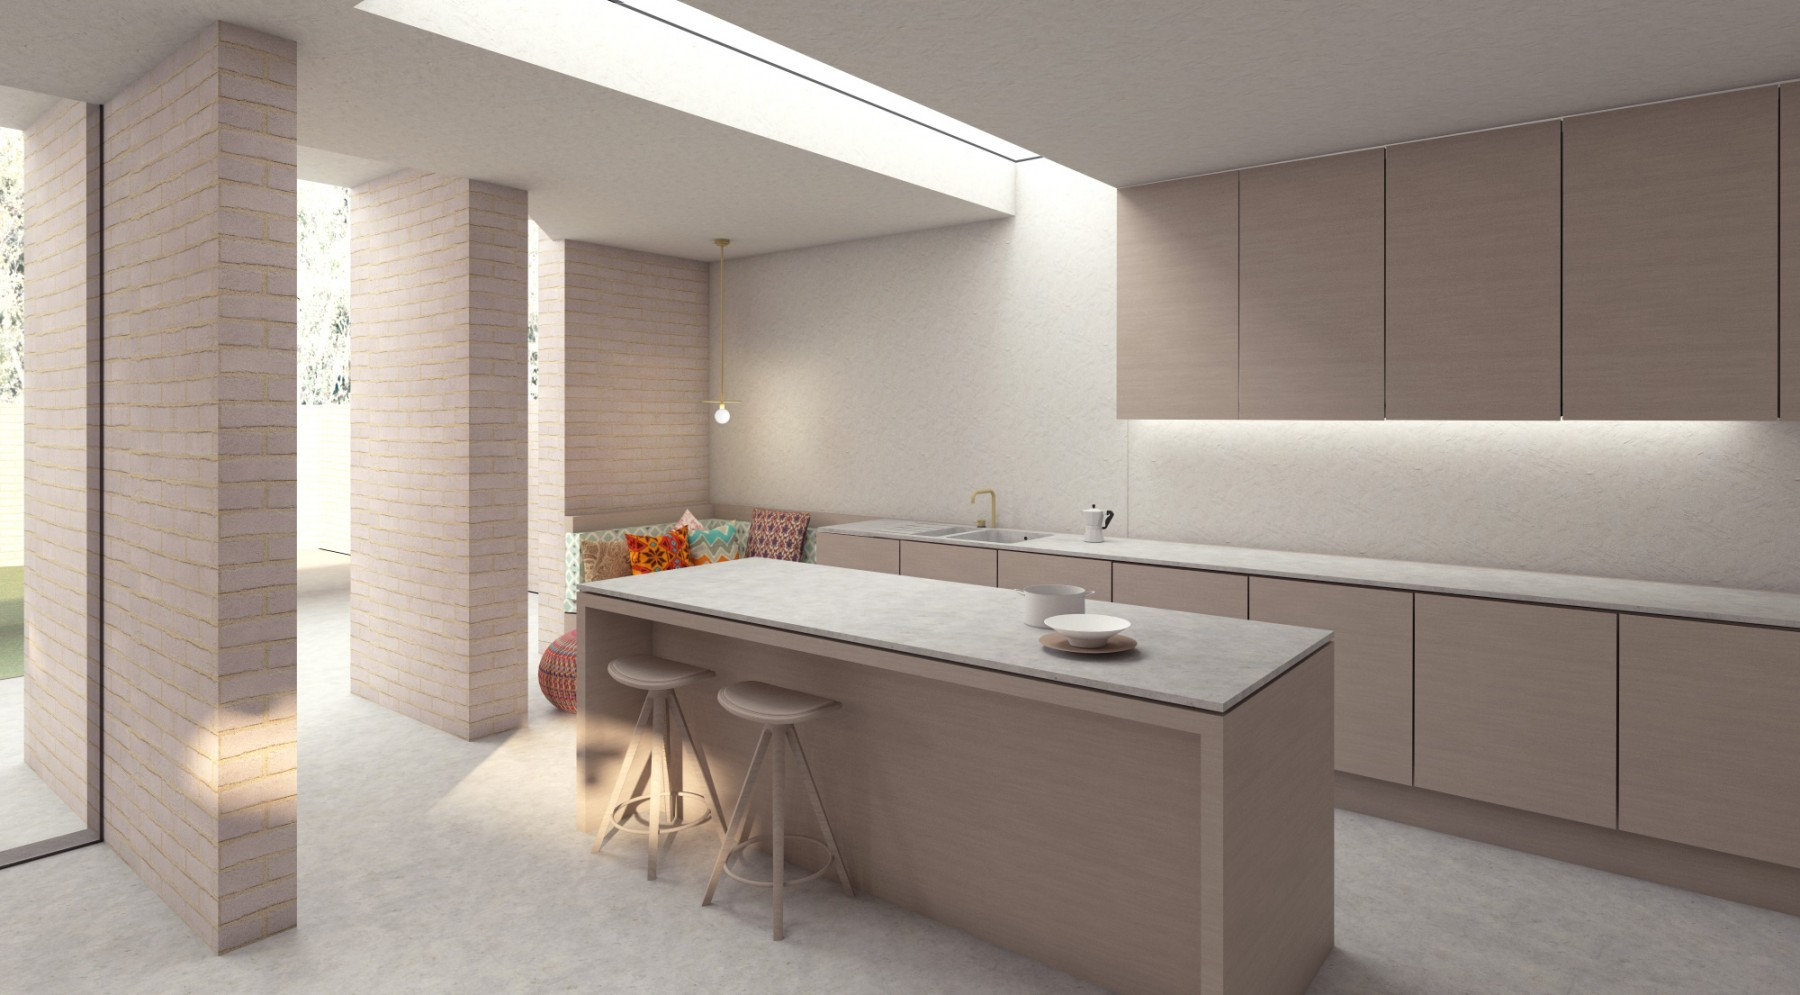 Architect designed canonbury house extension: kitchen